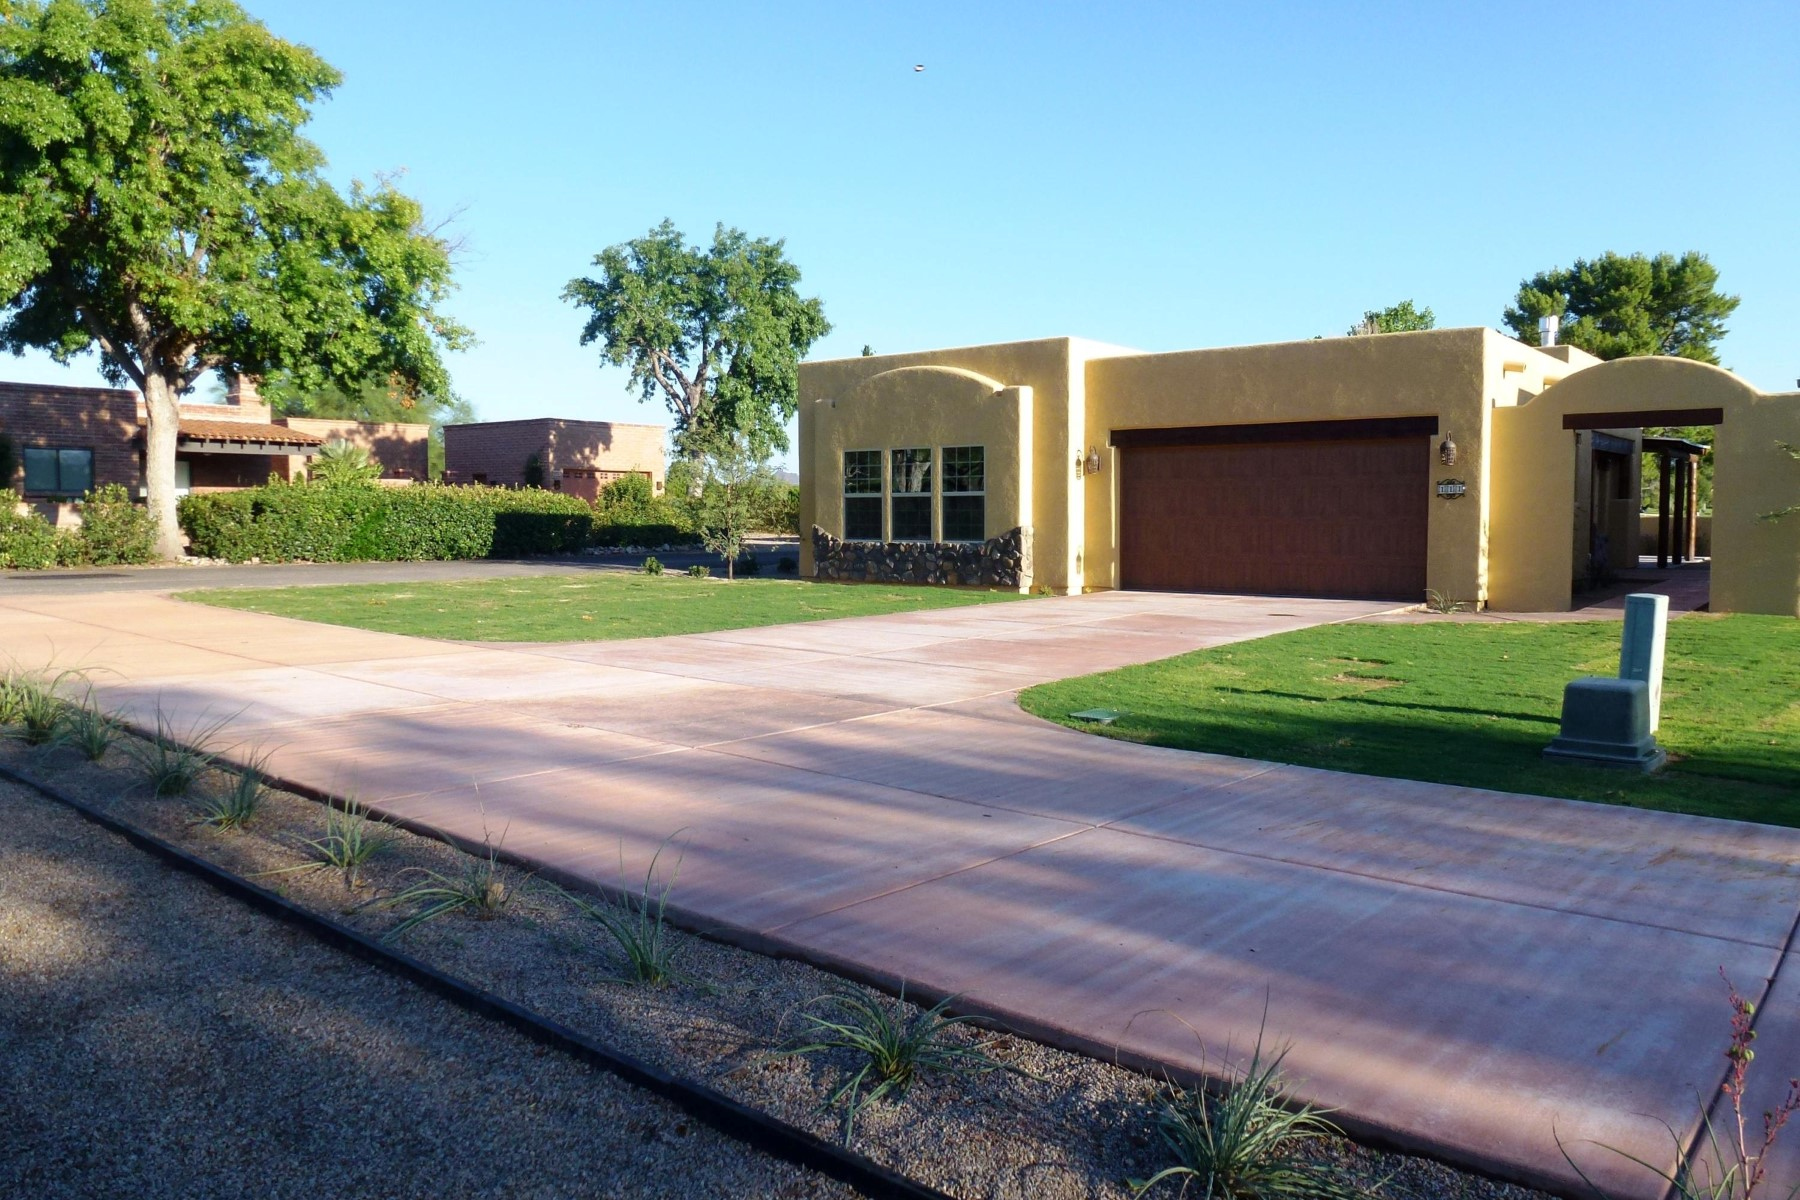 Single Family Home for Sale at Lovely home in the heart of Tubac Golf Resort 111 Avenida De Otero Tubac, Arizona, 85646 United States